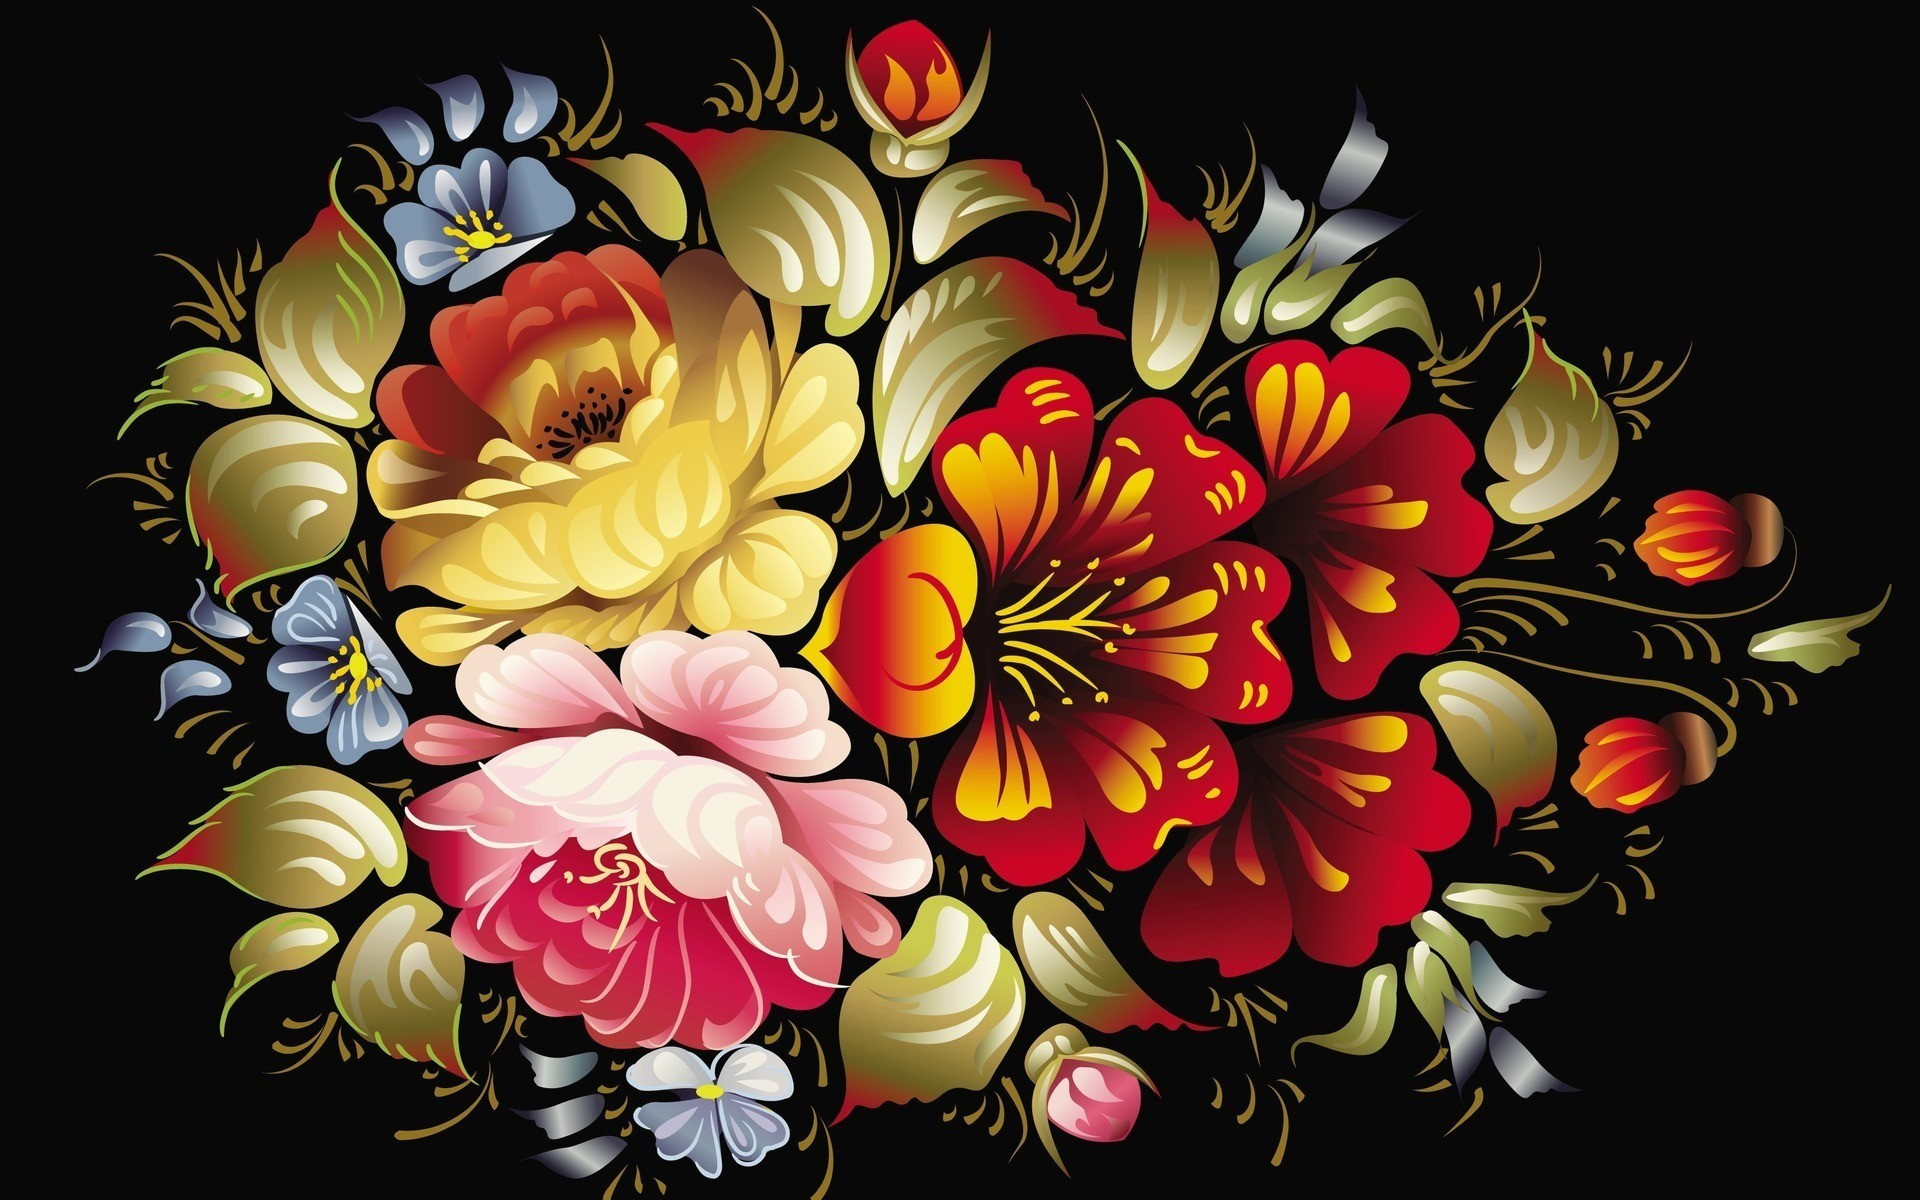 Black Background Wallpaper With Flowers 2 Background